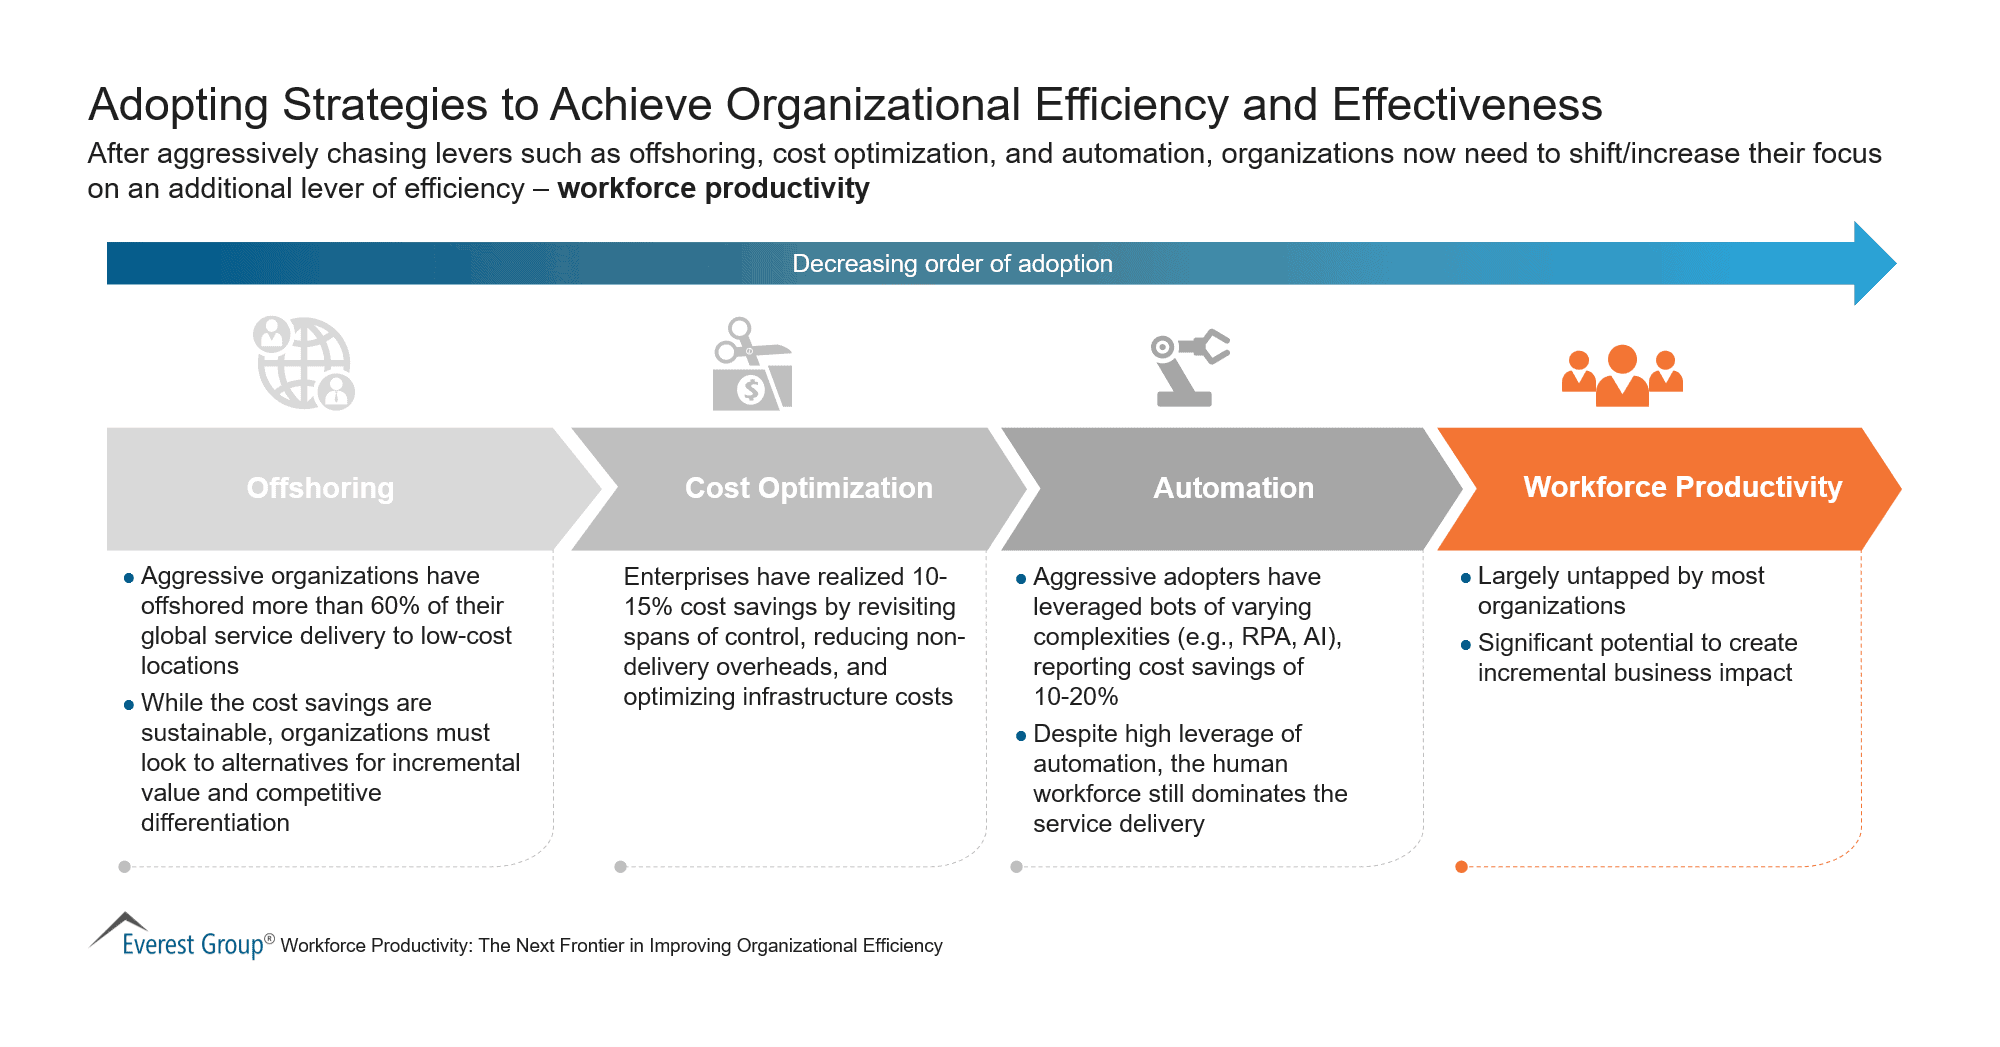 Adopting Strategies to Achieve Organizational Efficiency and Effectiveness